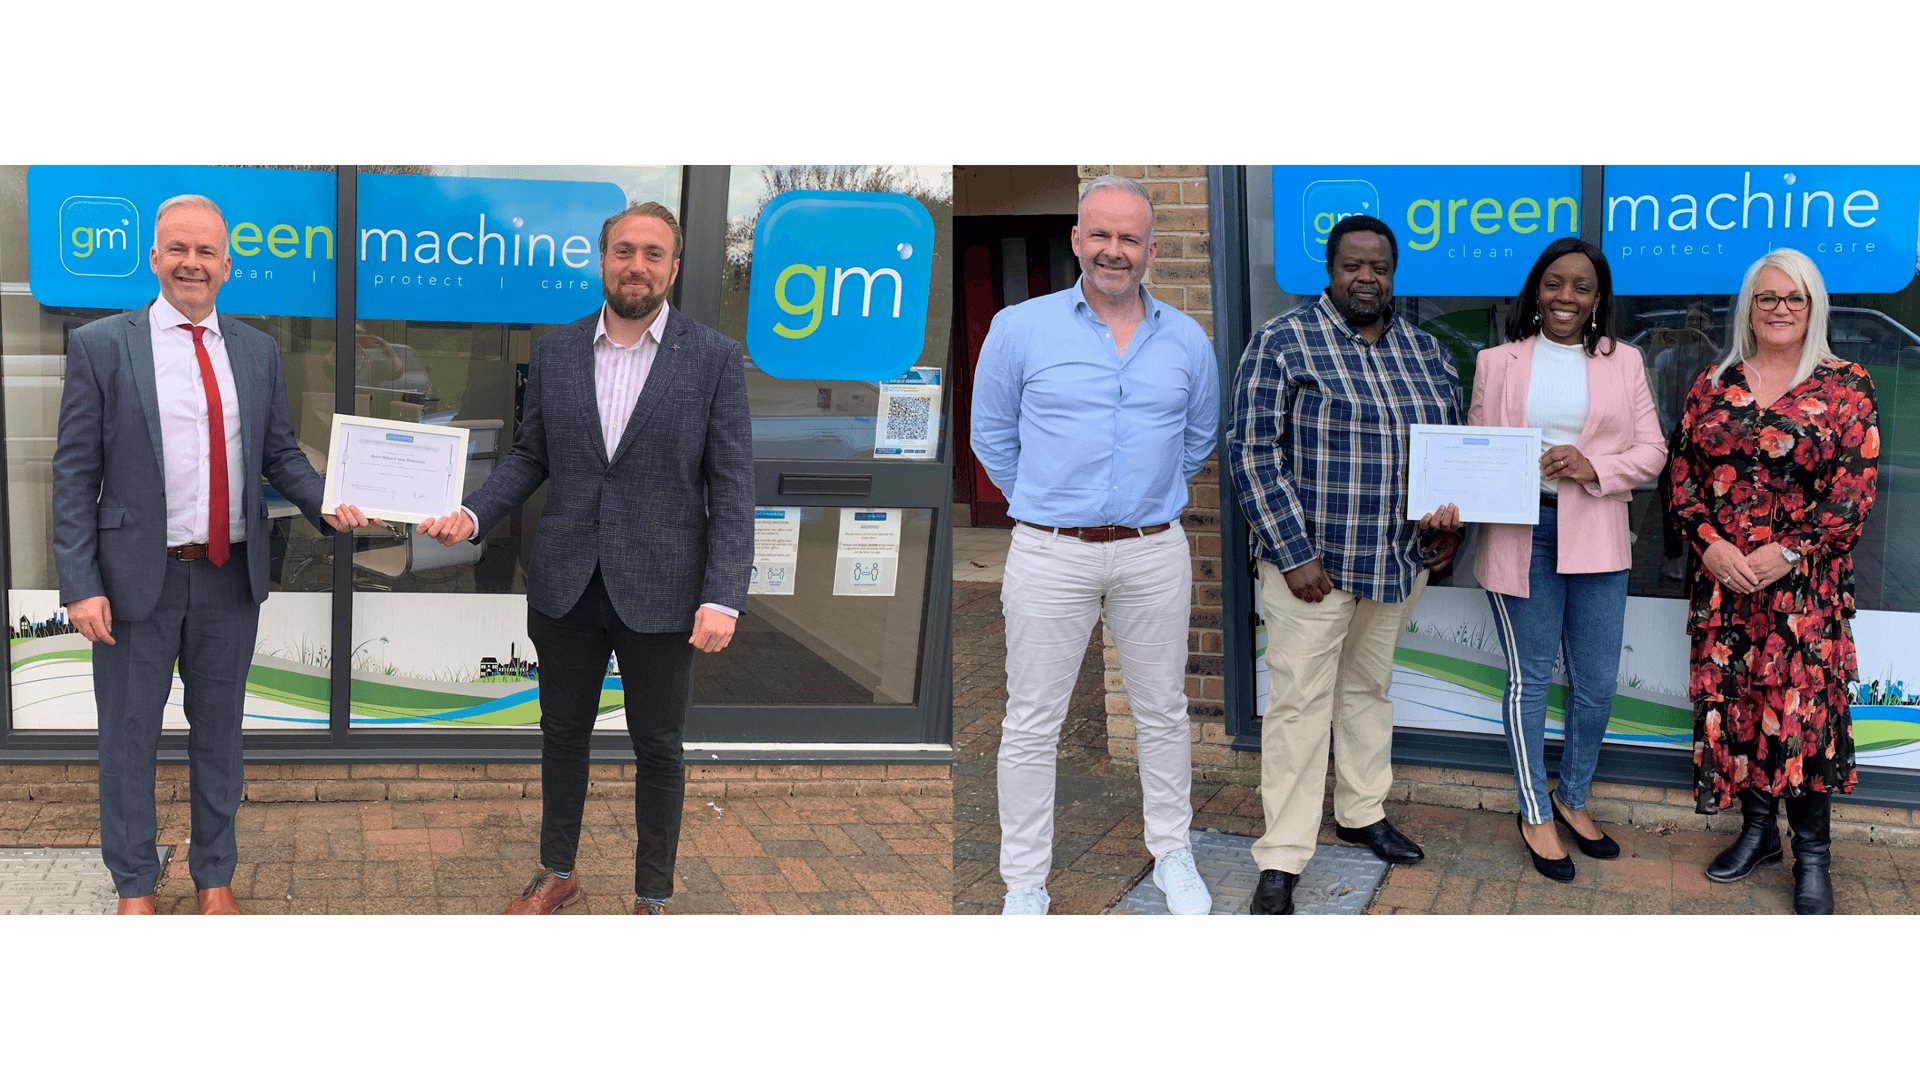 Eco-cleaning contractors Green Machine are branching out to Northampton and Sheffield after signing 2 new Franchisees in April